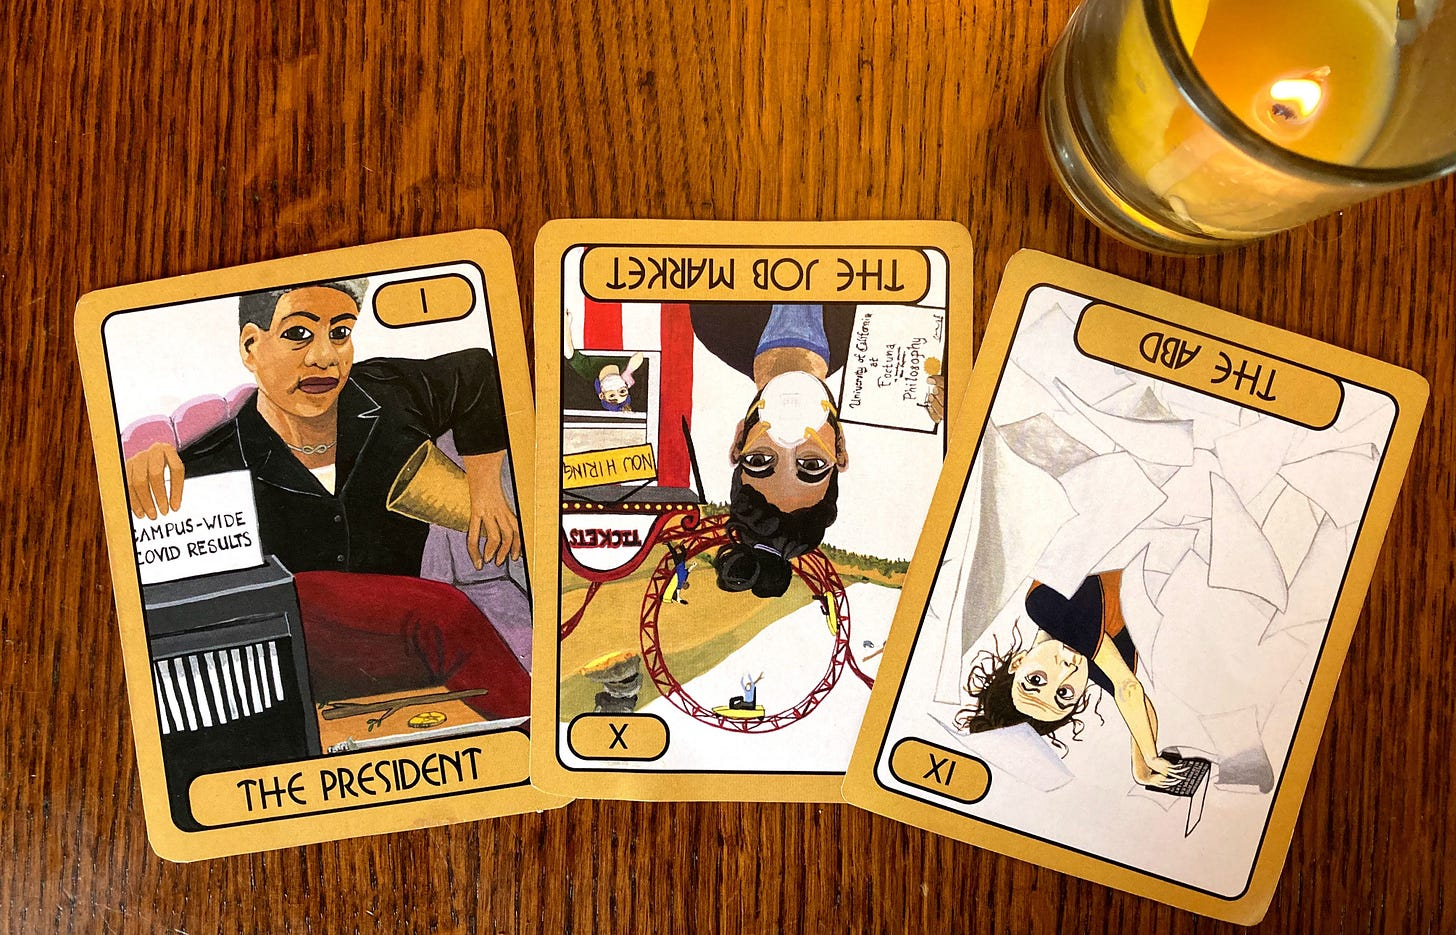 Three tarot cards on a wooden table with a candle. The President shows a woman on a purple couch shredding campus covid test results; the job market reversed shows a man wearing a mask in front of a roller coaster; and the abd shows a woman typing on a laptop surrounded by papers.